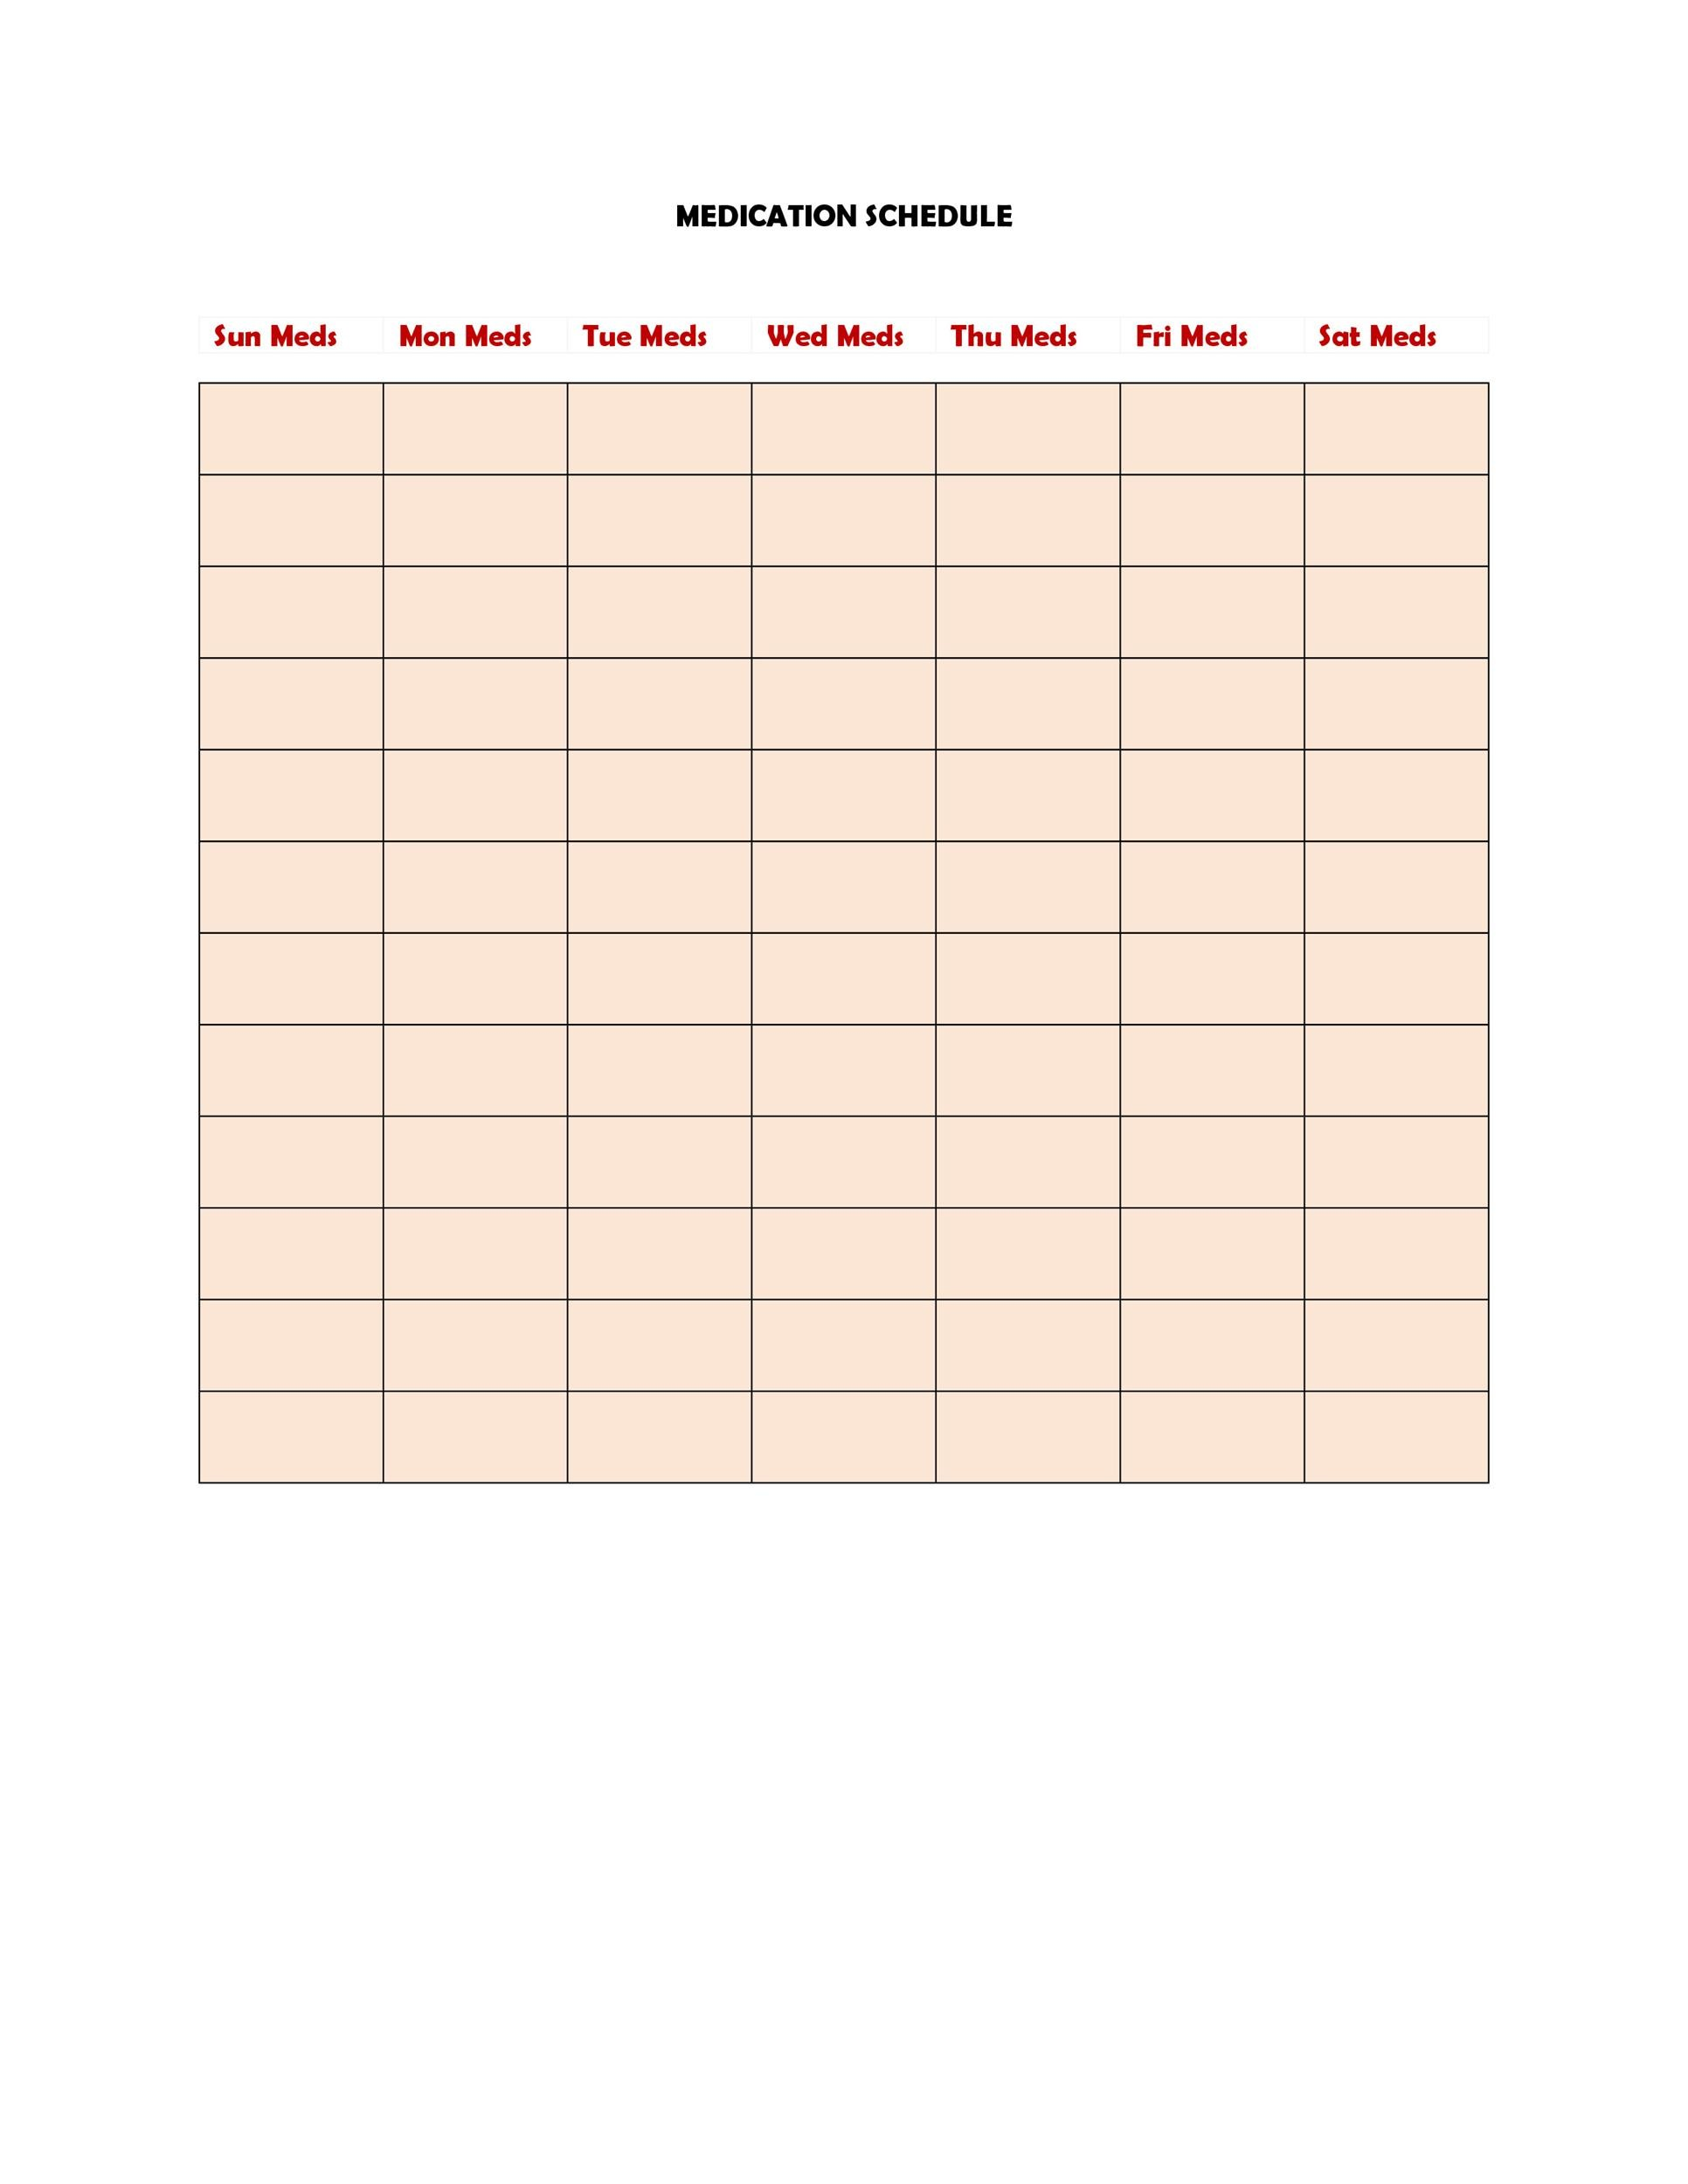 Free medication schedule template 36